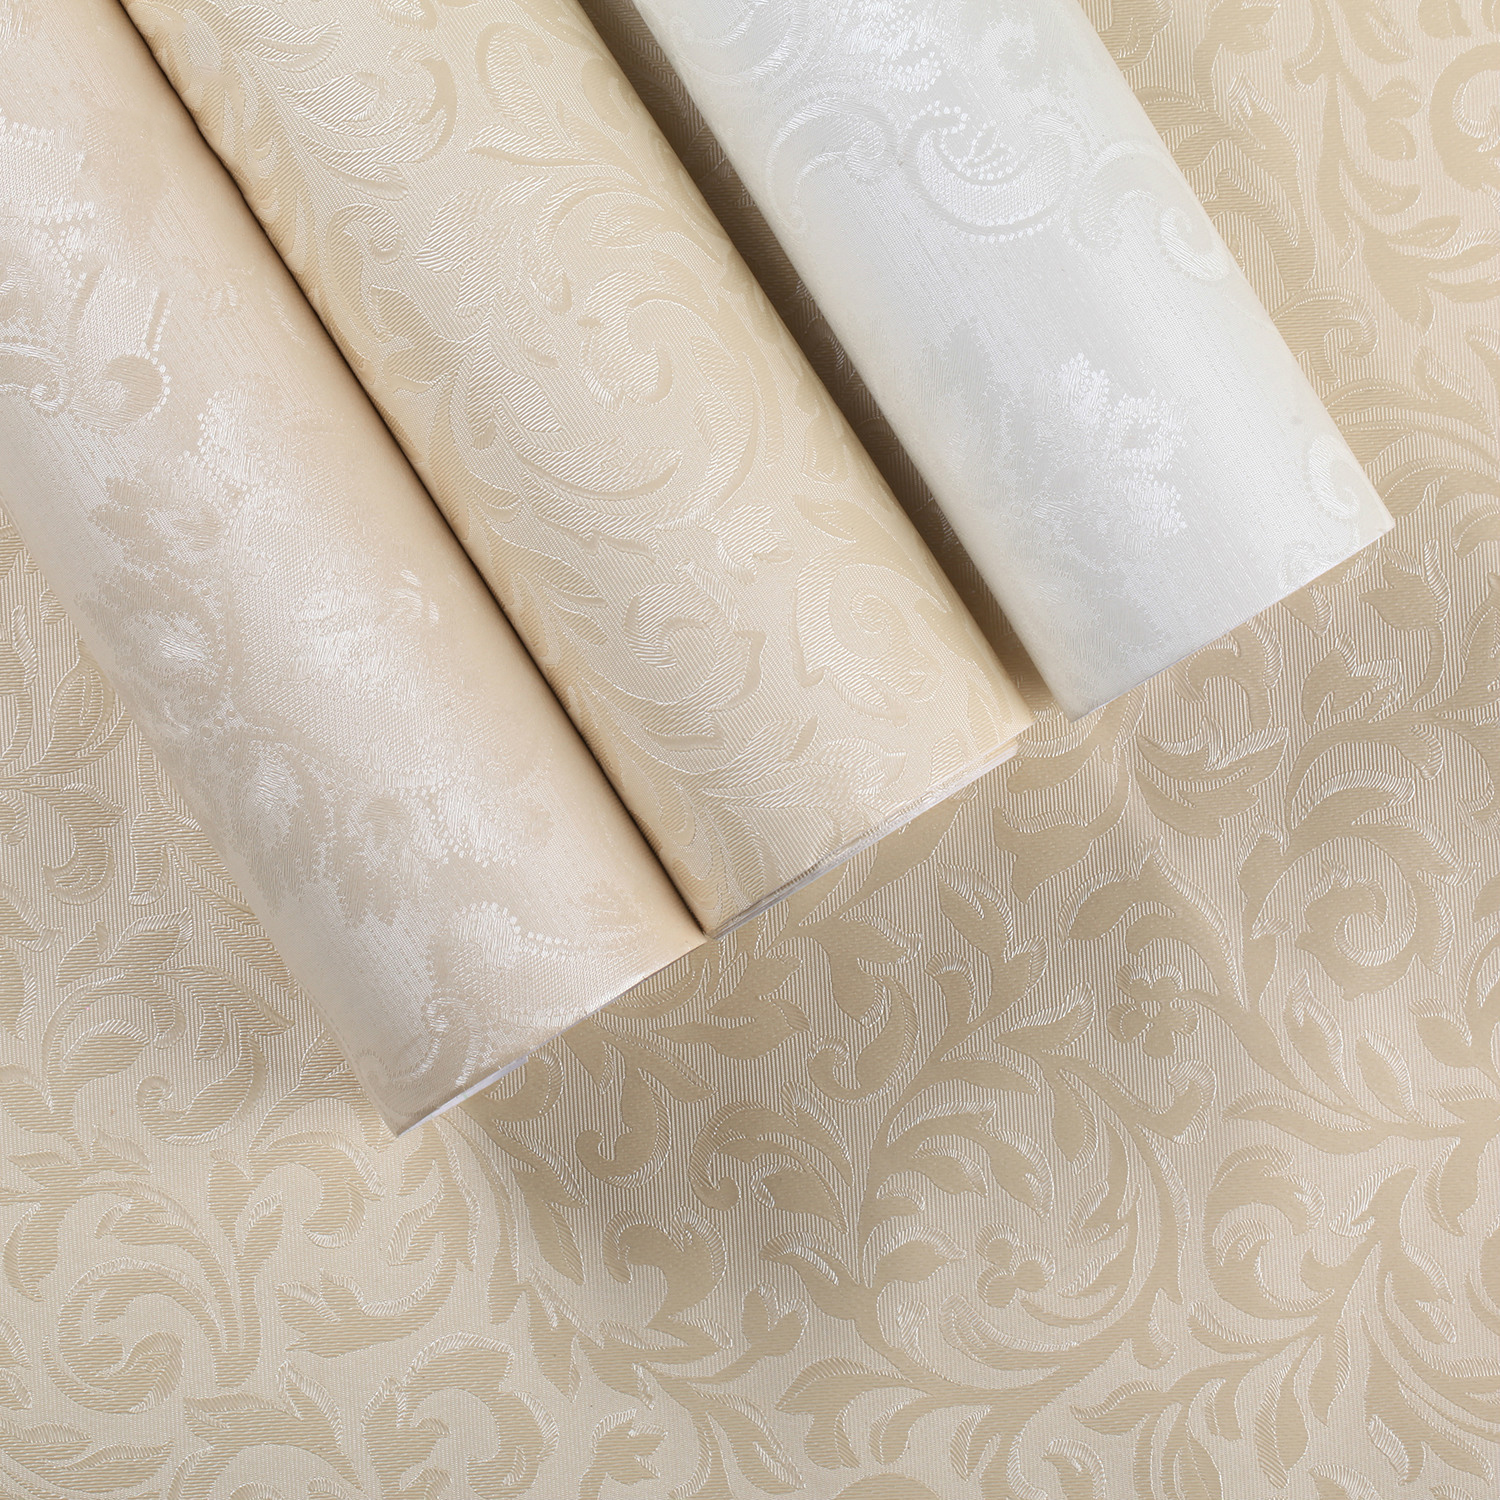 60*100cm Self-sticking Classical European Style Non Woven Wall Paper Roll Wallcovering Luxury Floral Wallpaper For Bedroom Walls